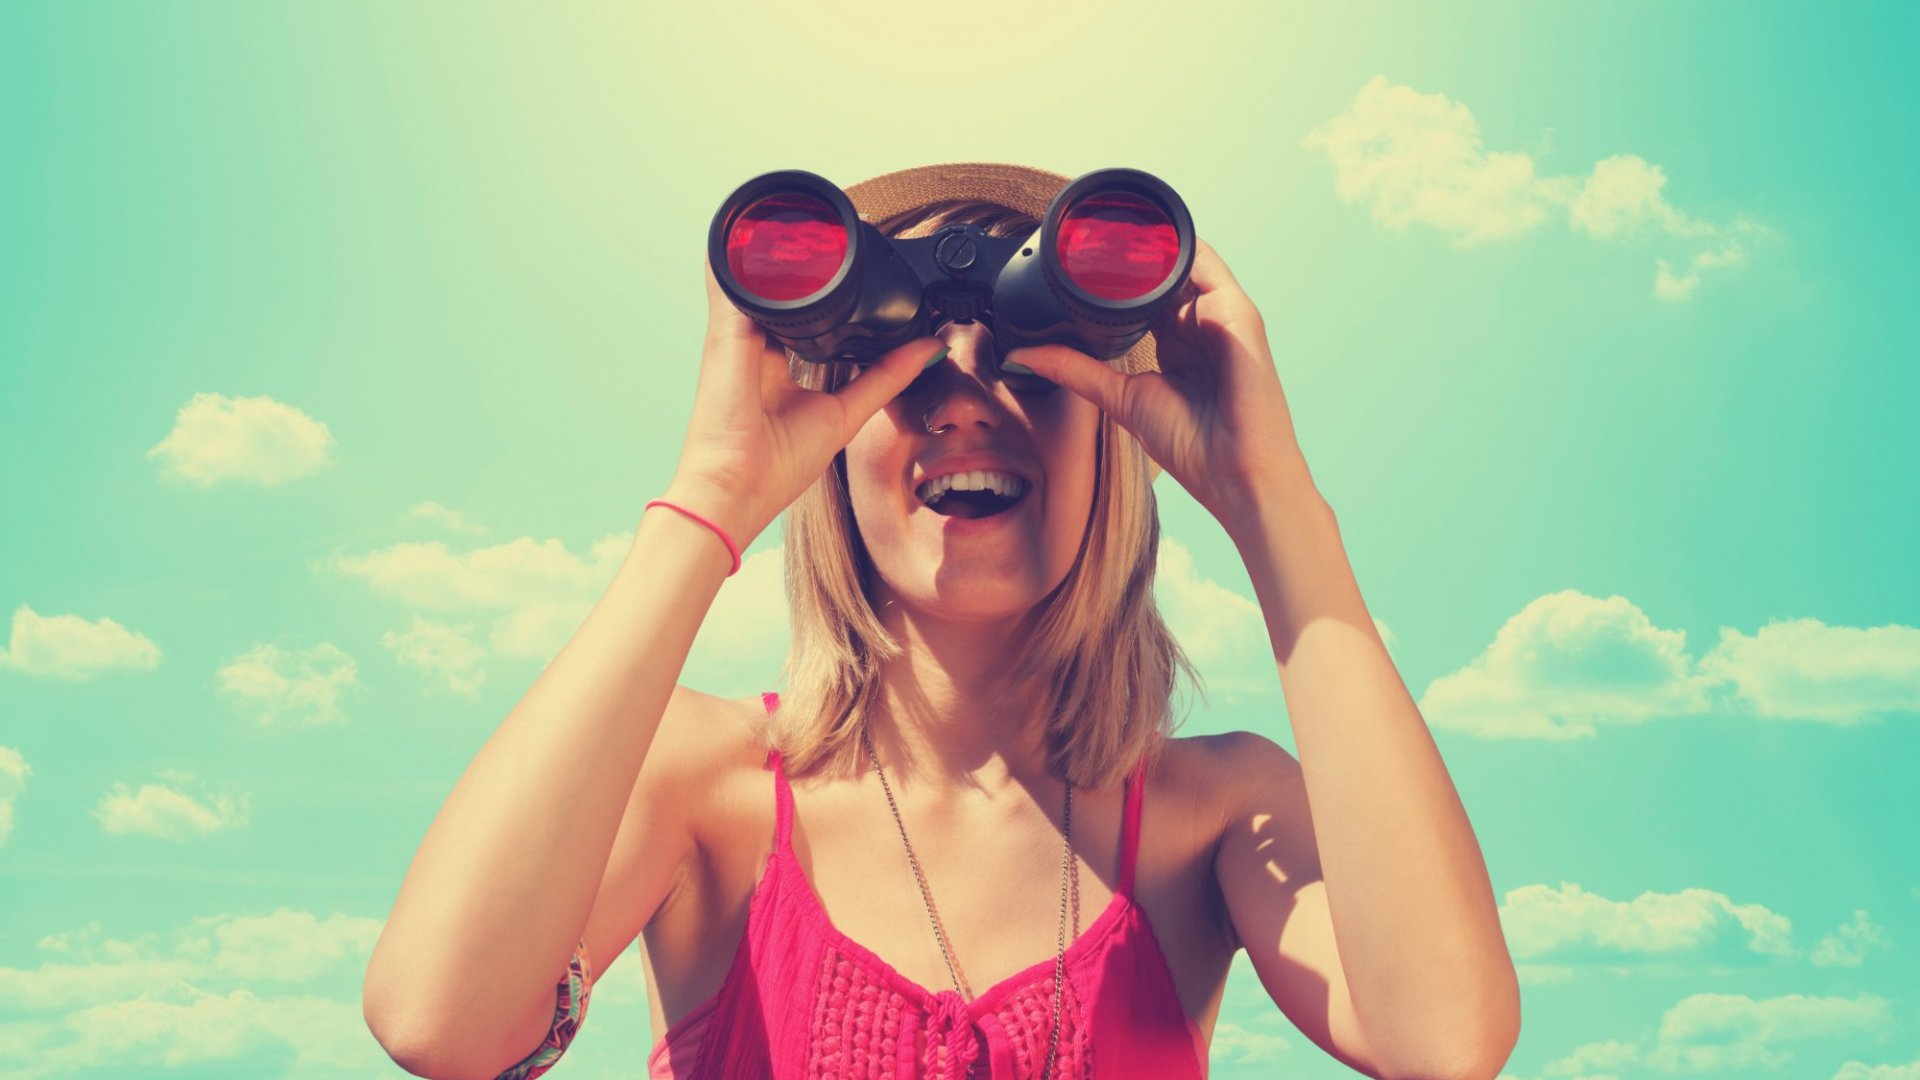 4 Steps To Find What You're Looking For